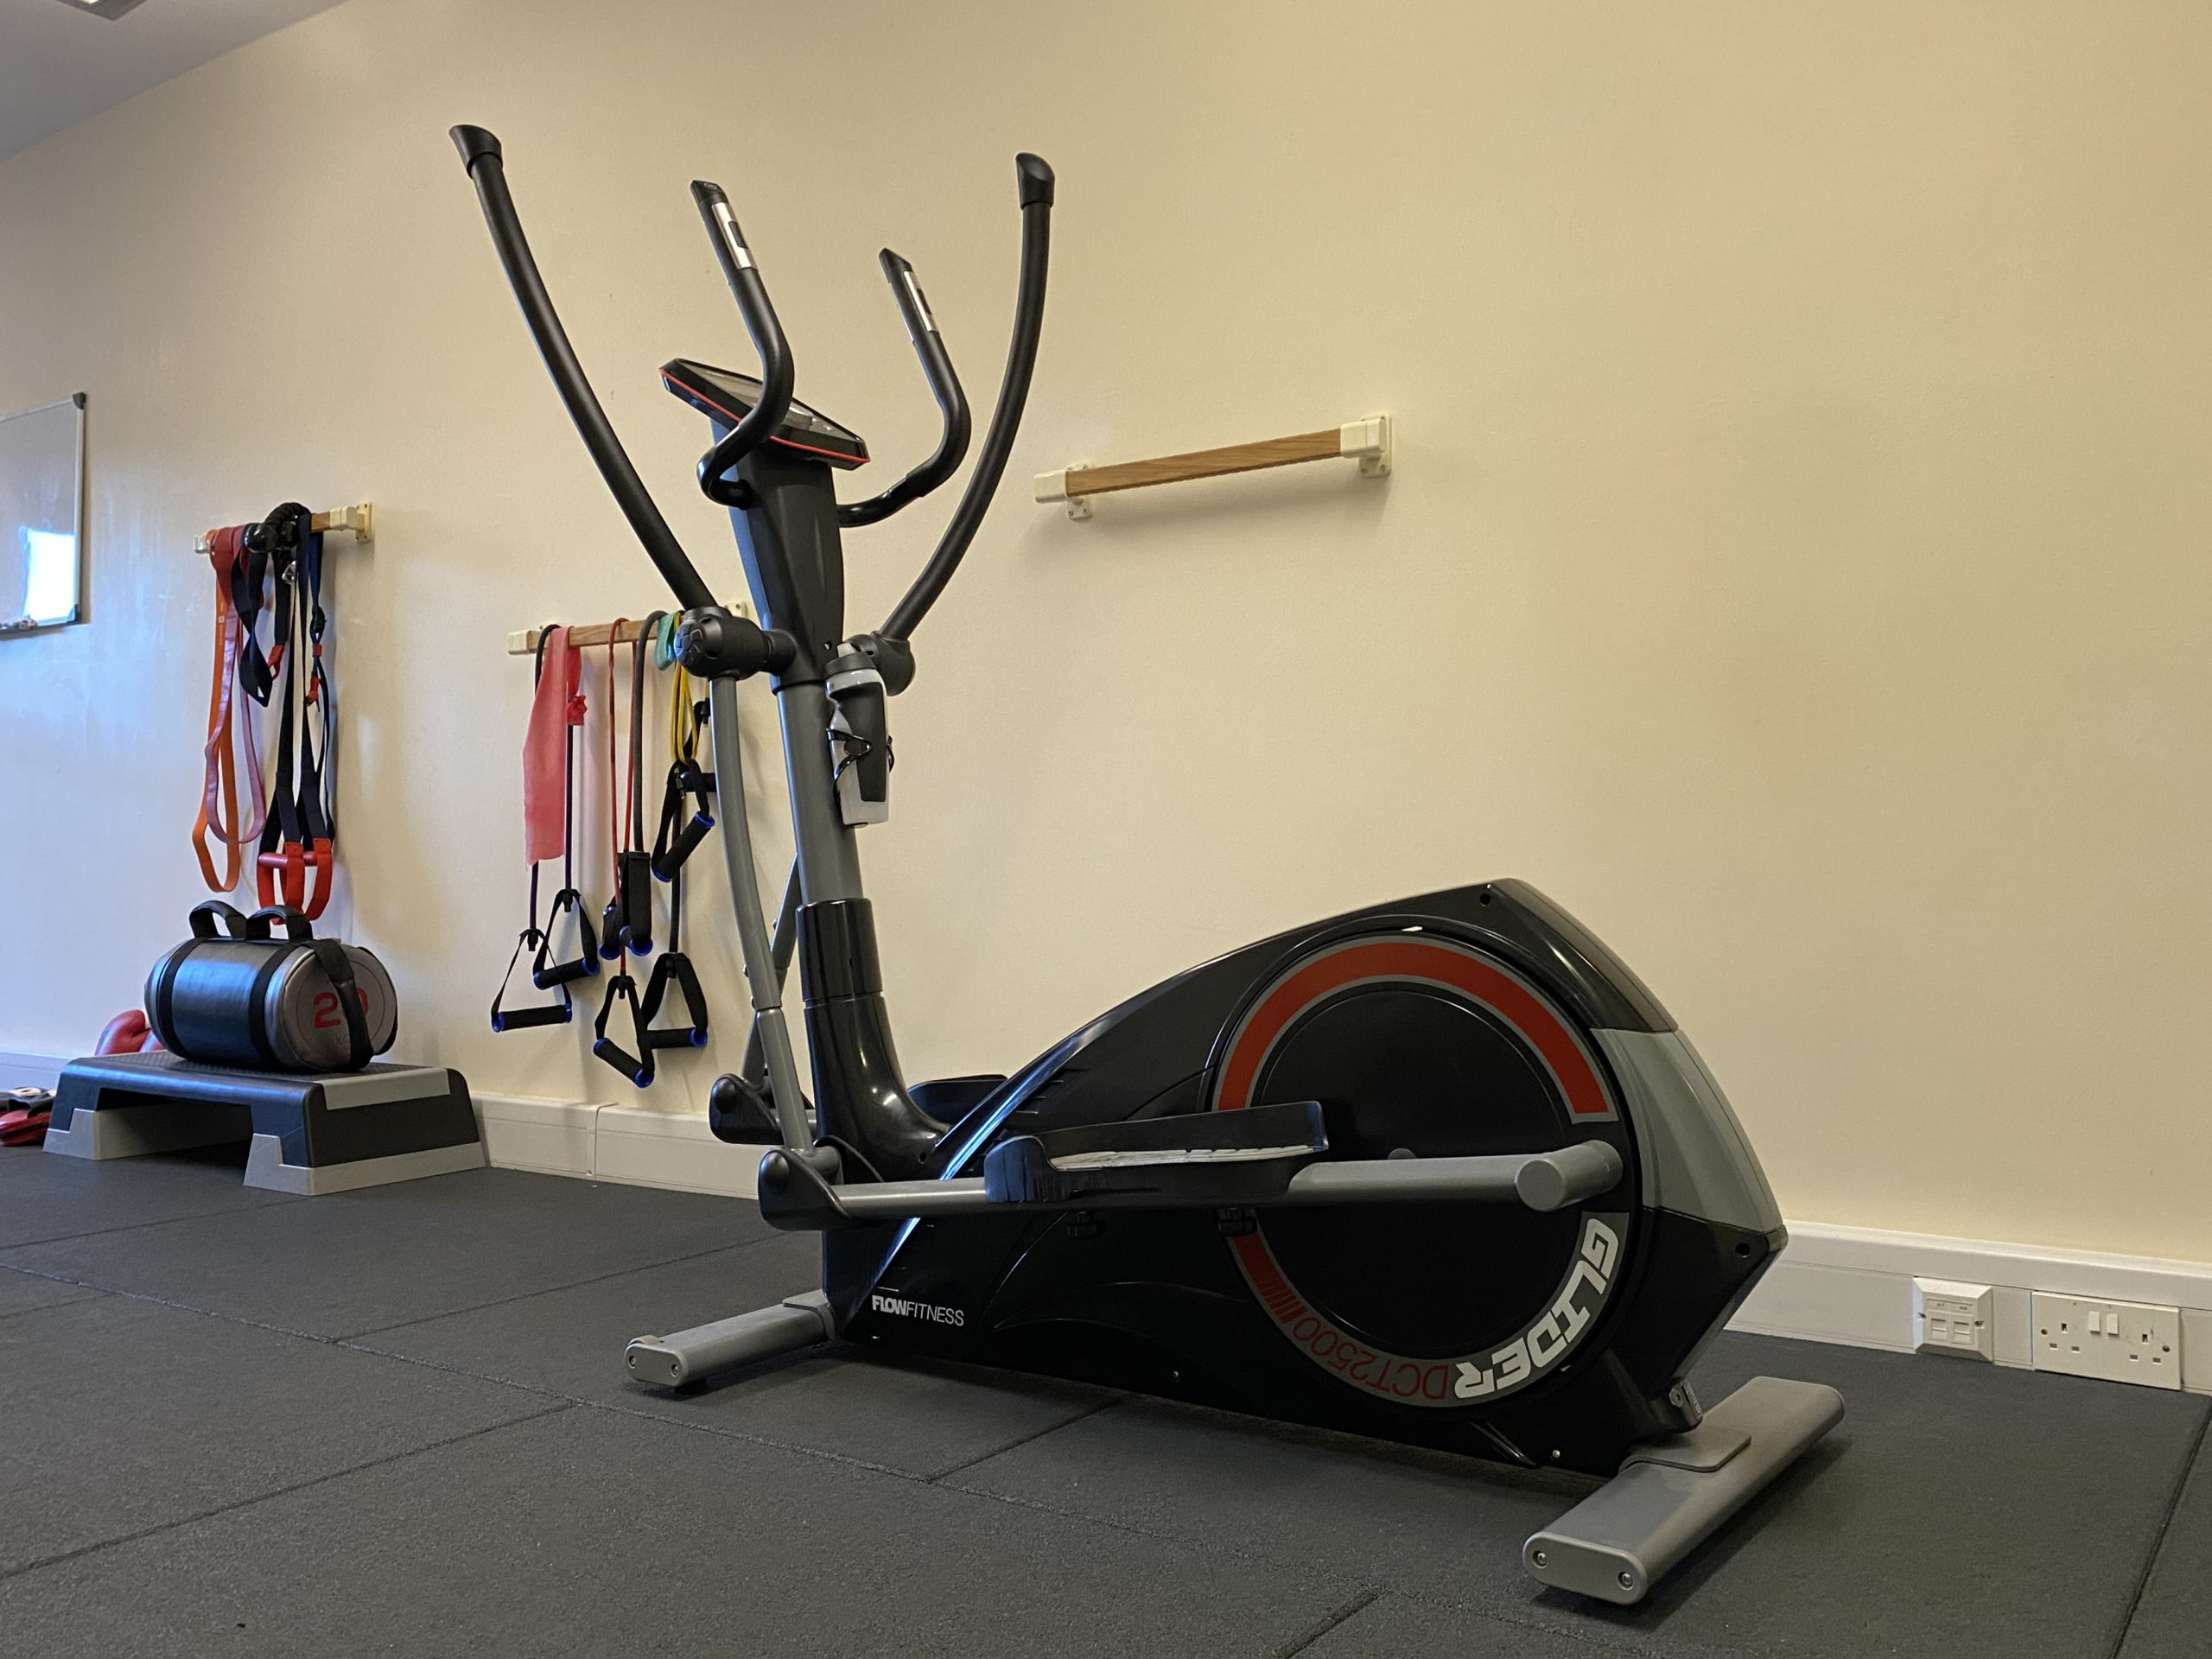 Elliptical cross trainer, resitance bands, step and power bag in gym